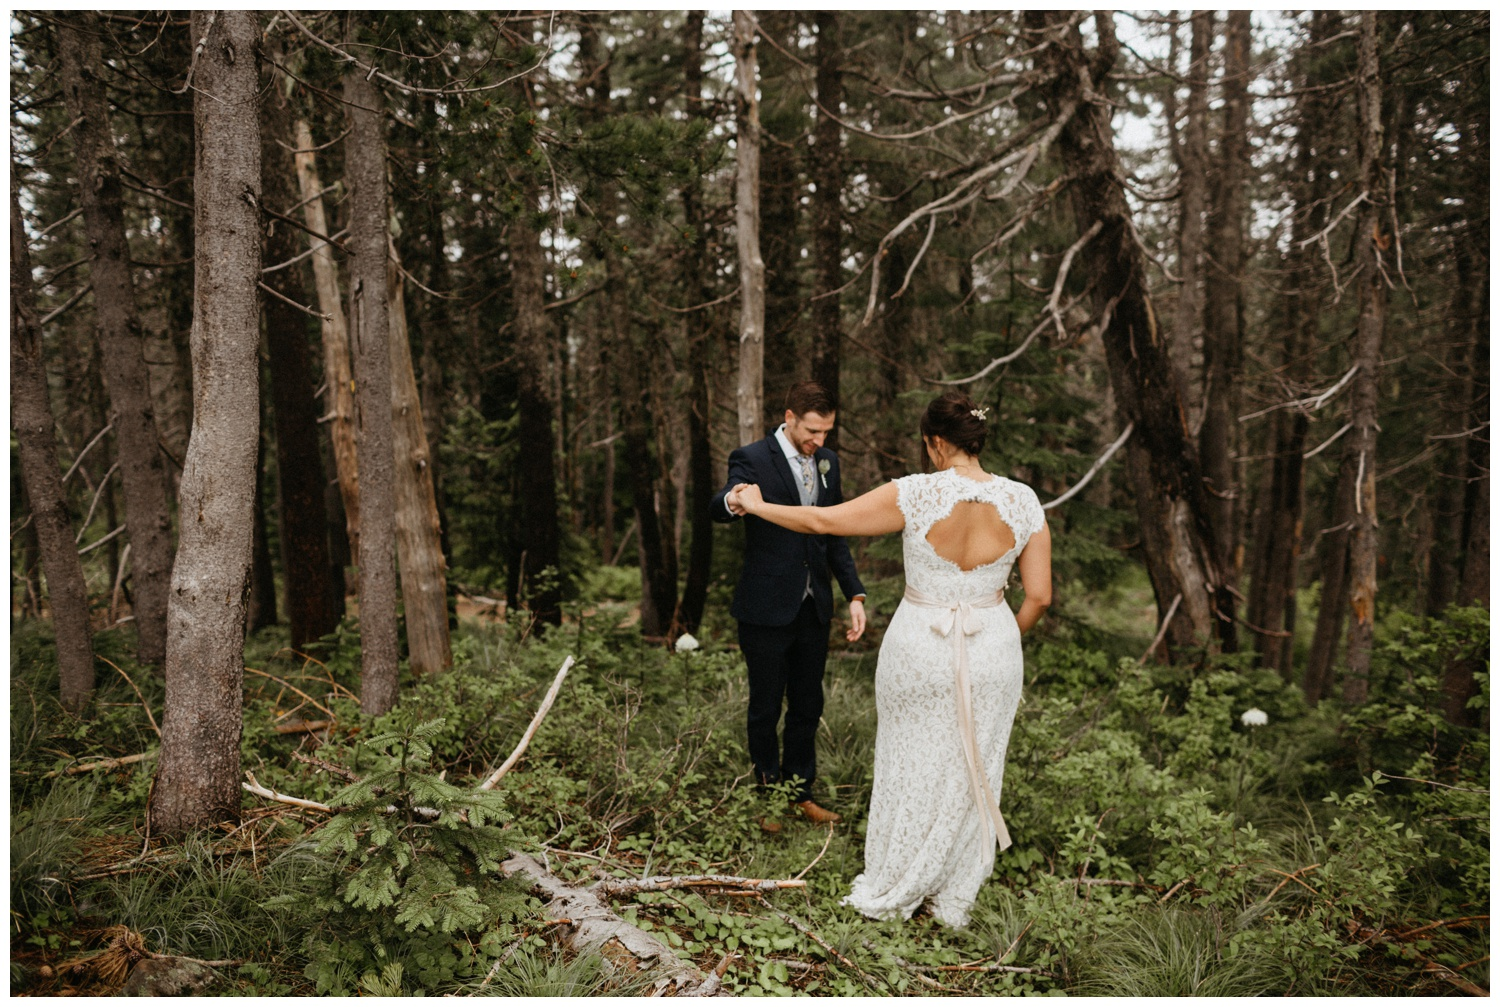 jasmine-j-photography-mt-hood-skibowl-wedding_0018.jpg